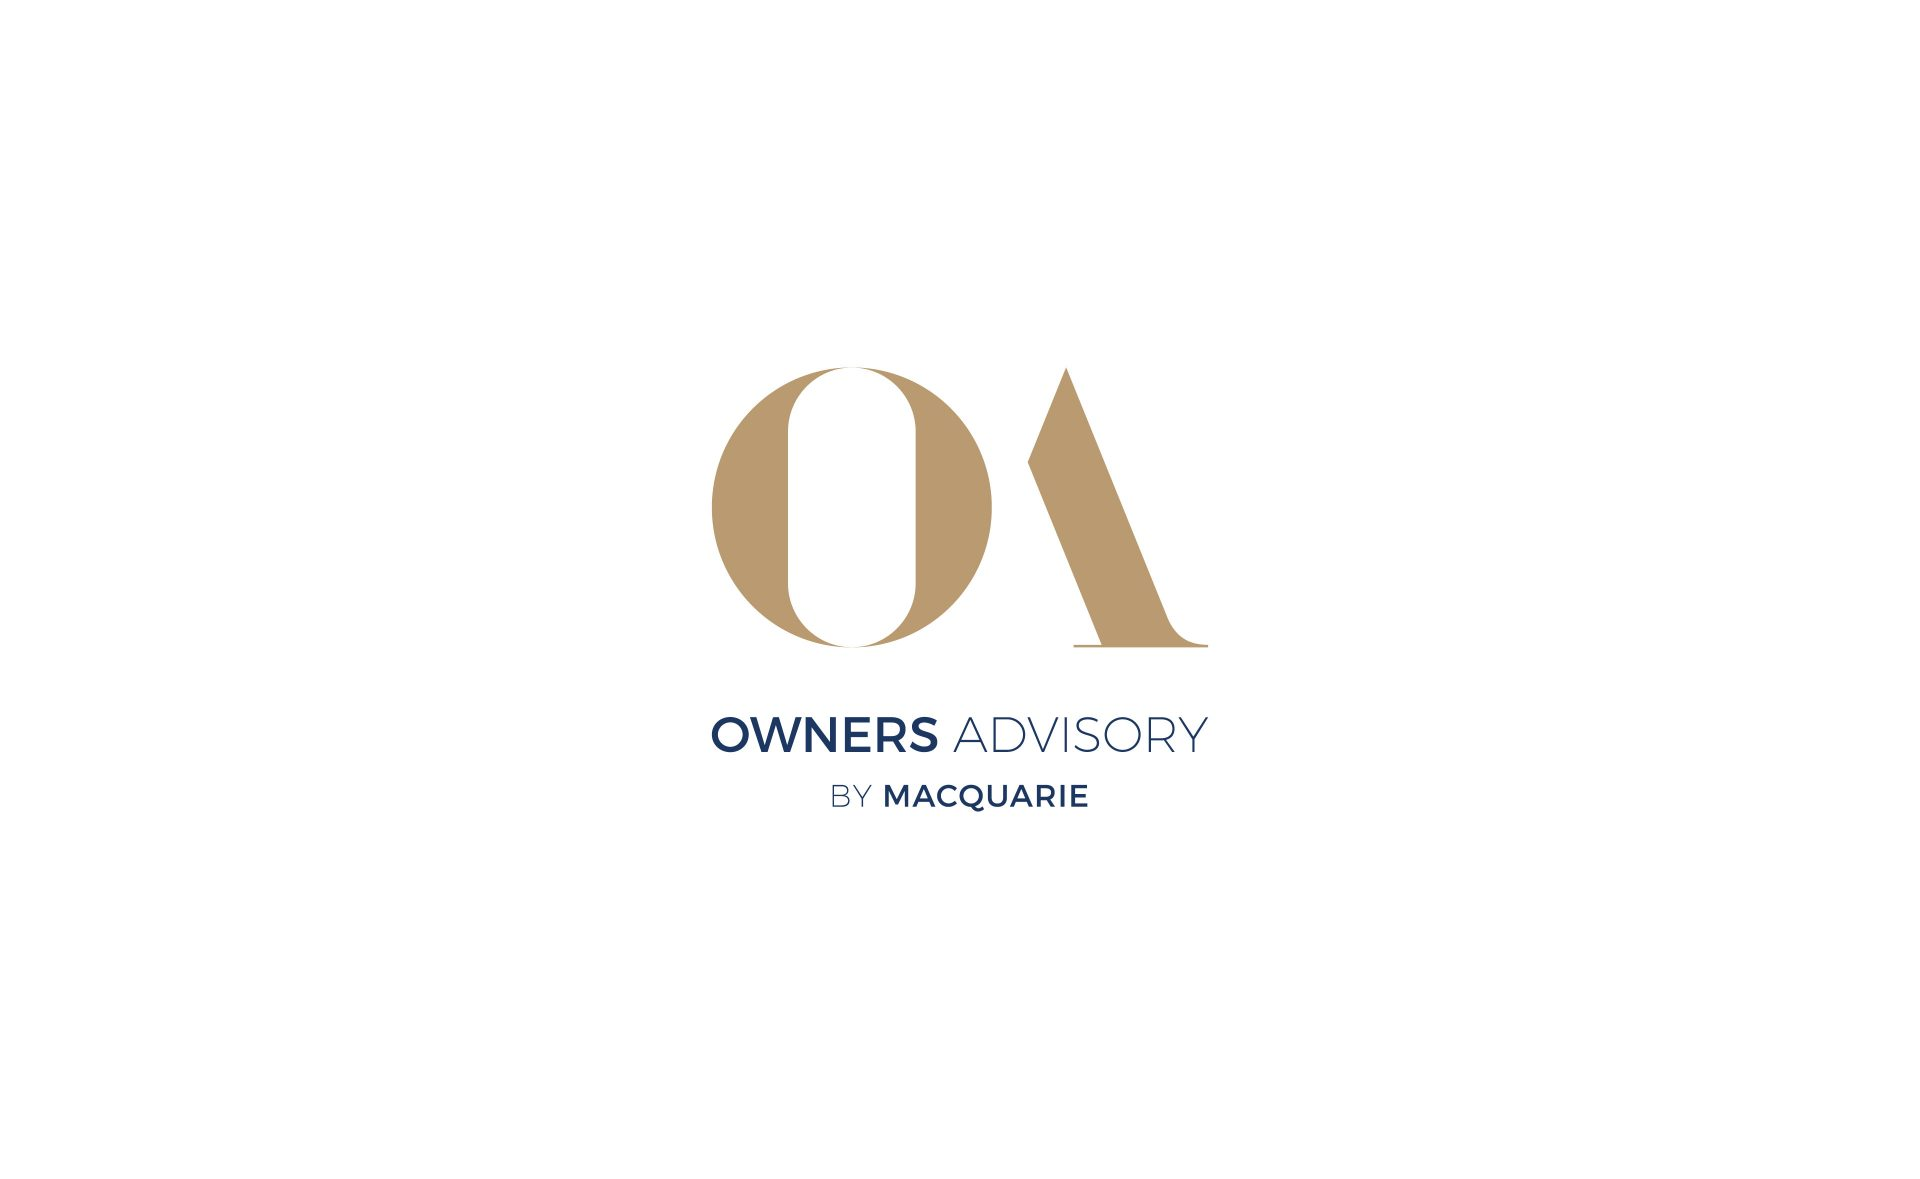 Owners Advisory by Macquarie